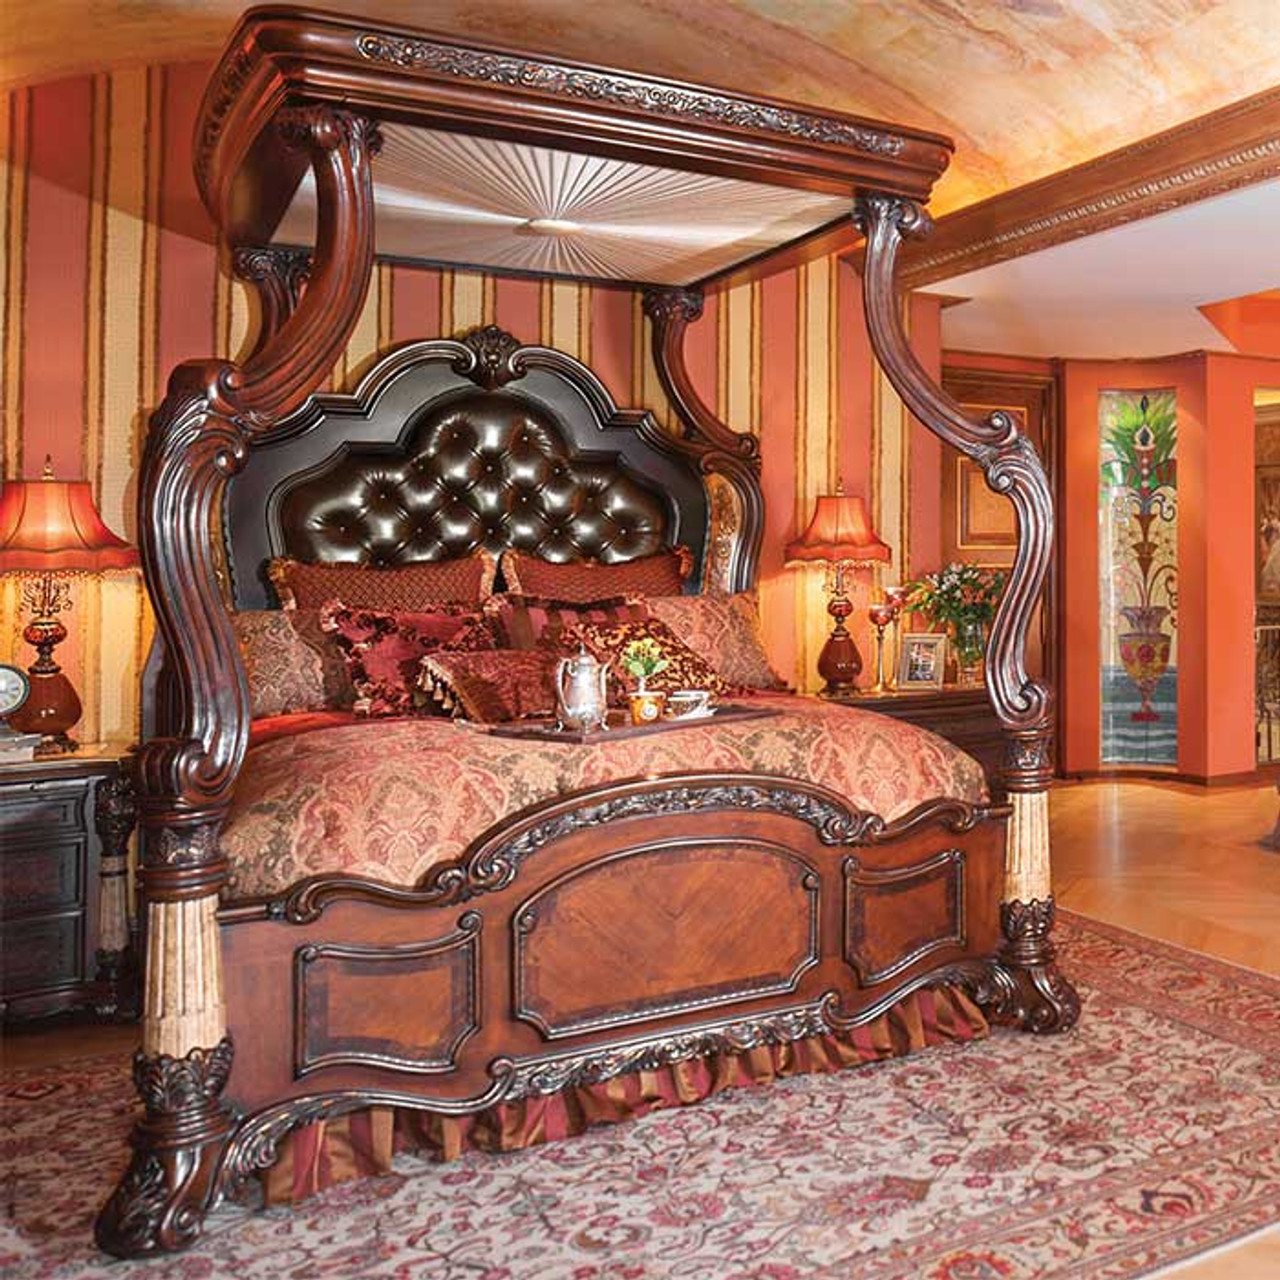 Victoria S Manor King Canopy Bed Magnolia Hall